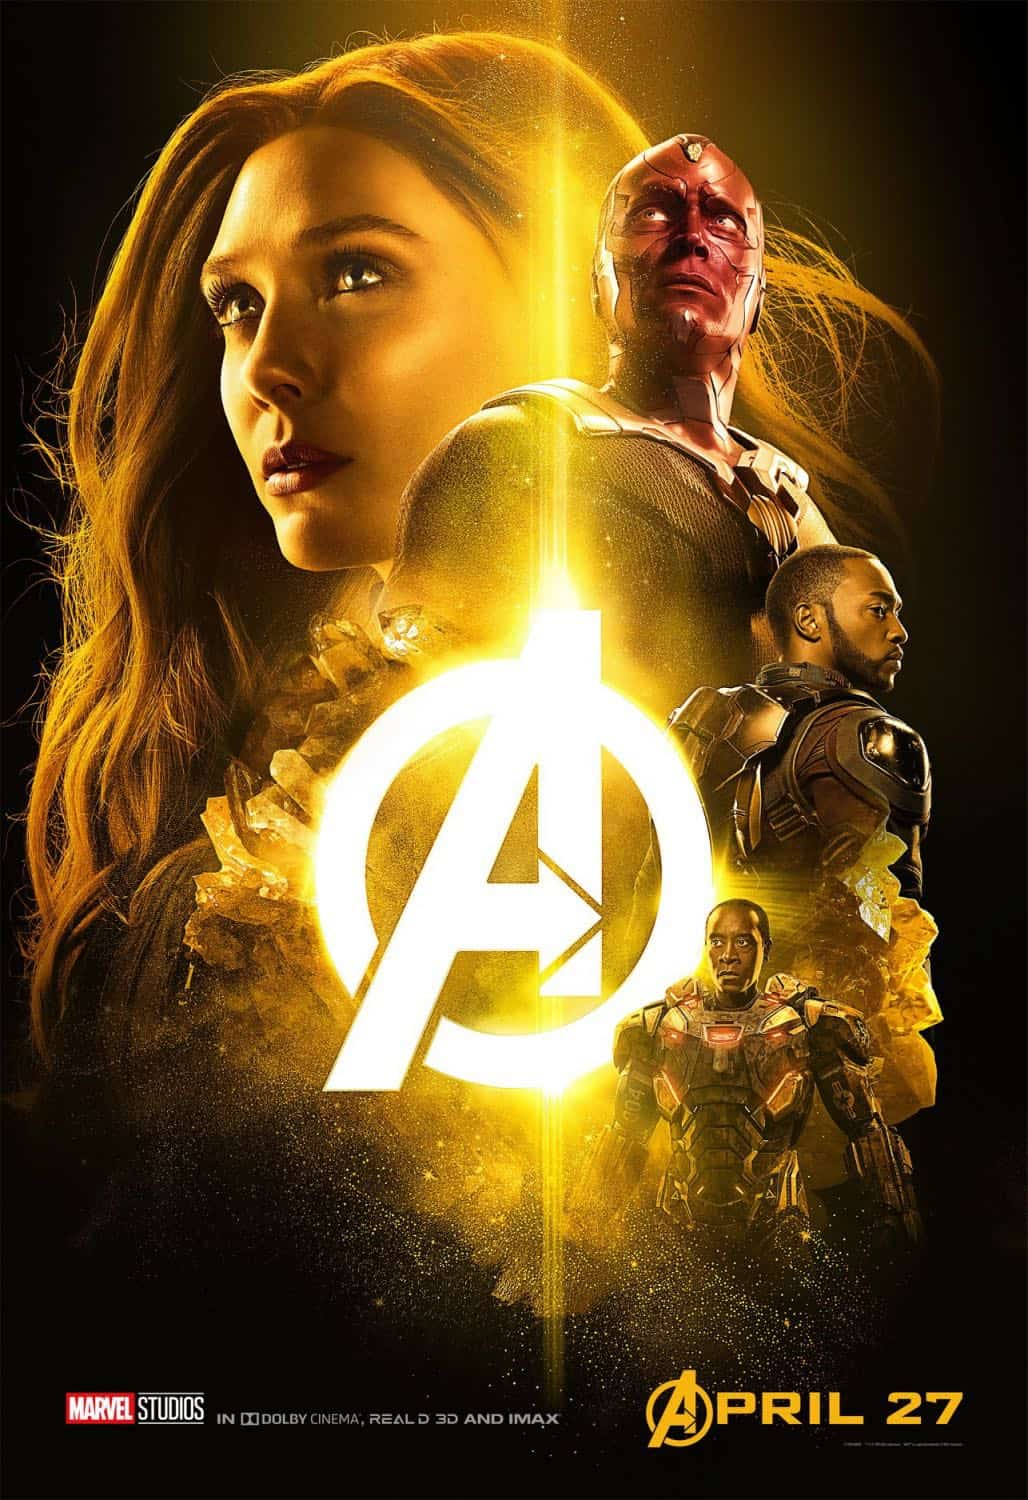 New AVENGERS INFINITY WAR Posters 4